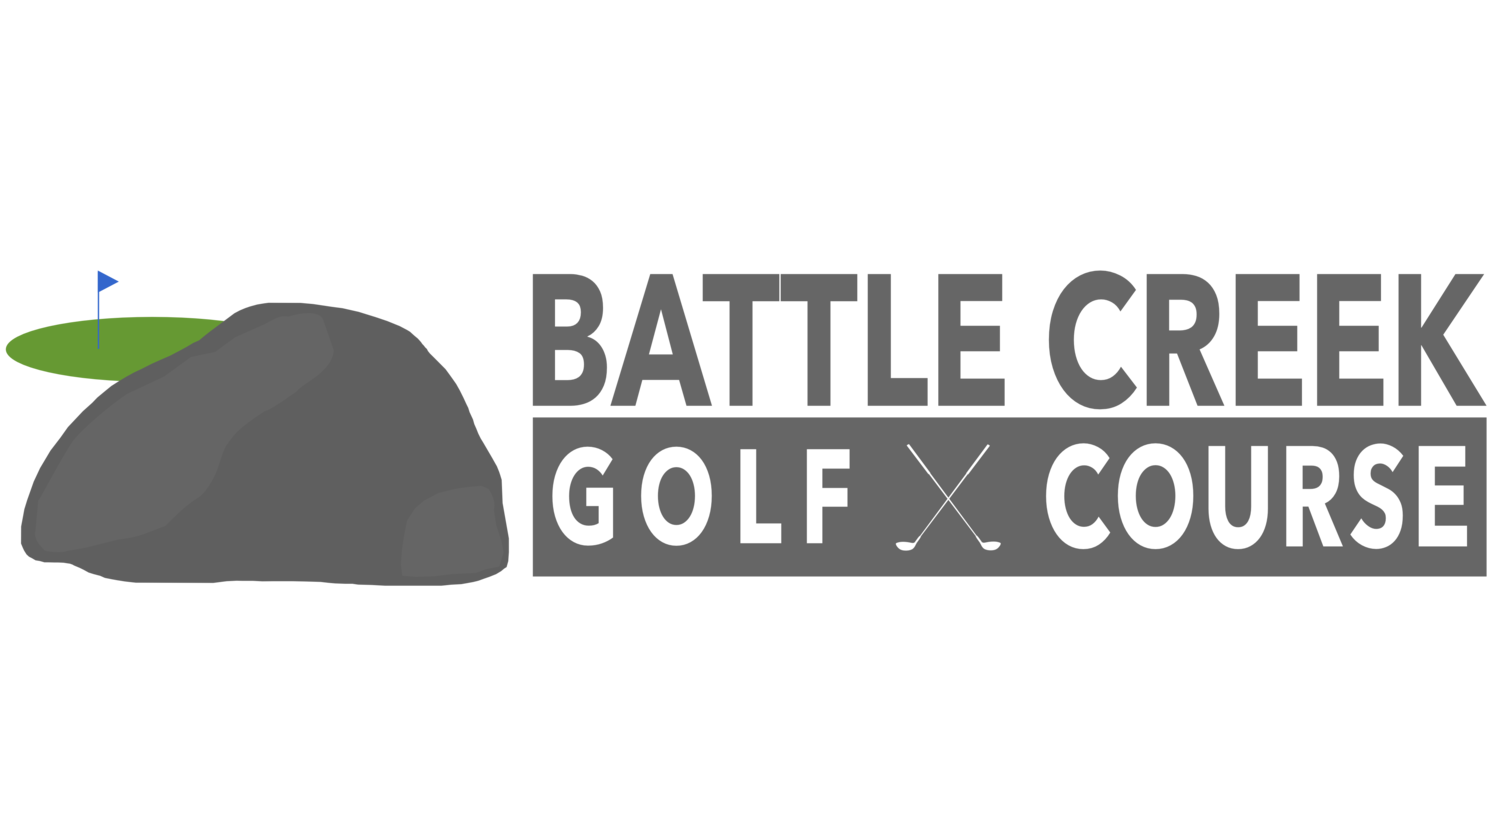 Battle Creek Golf Course